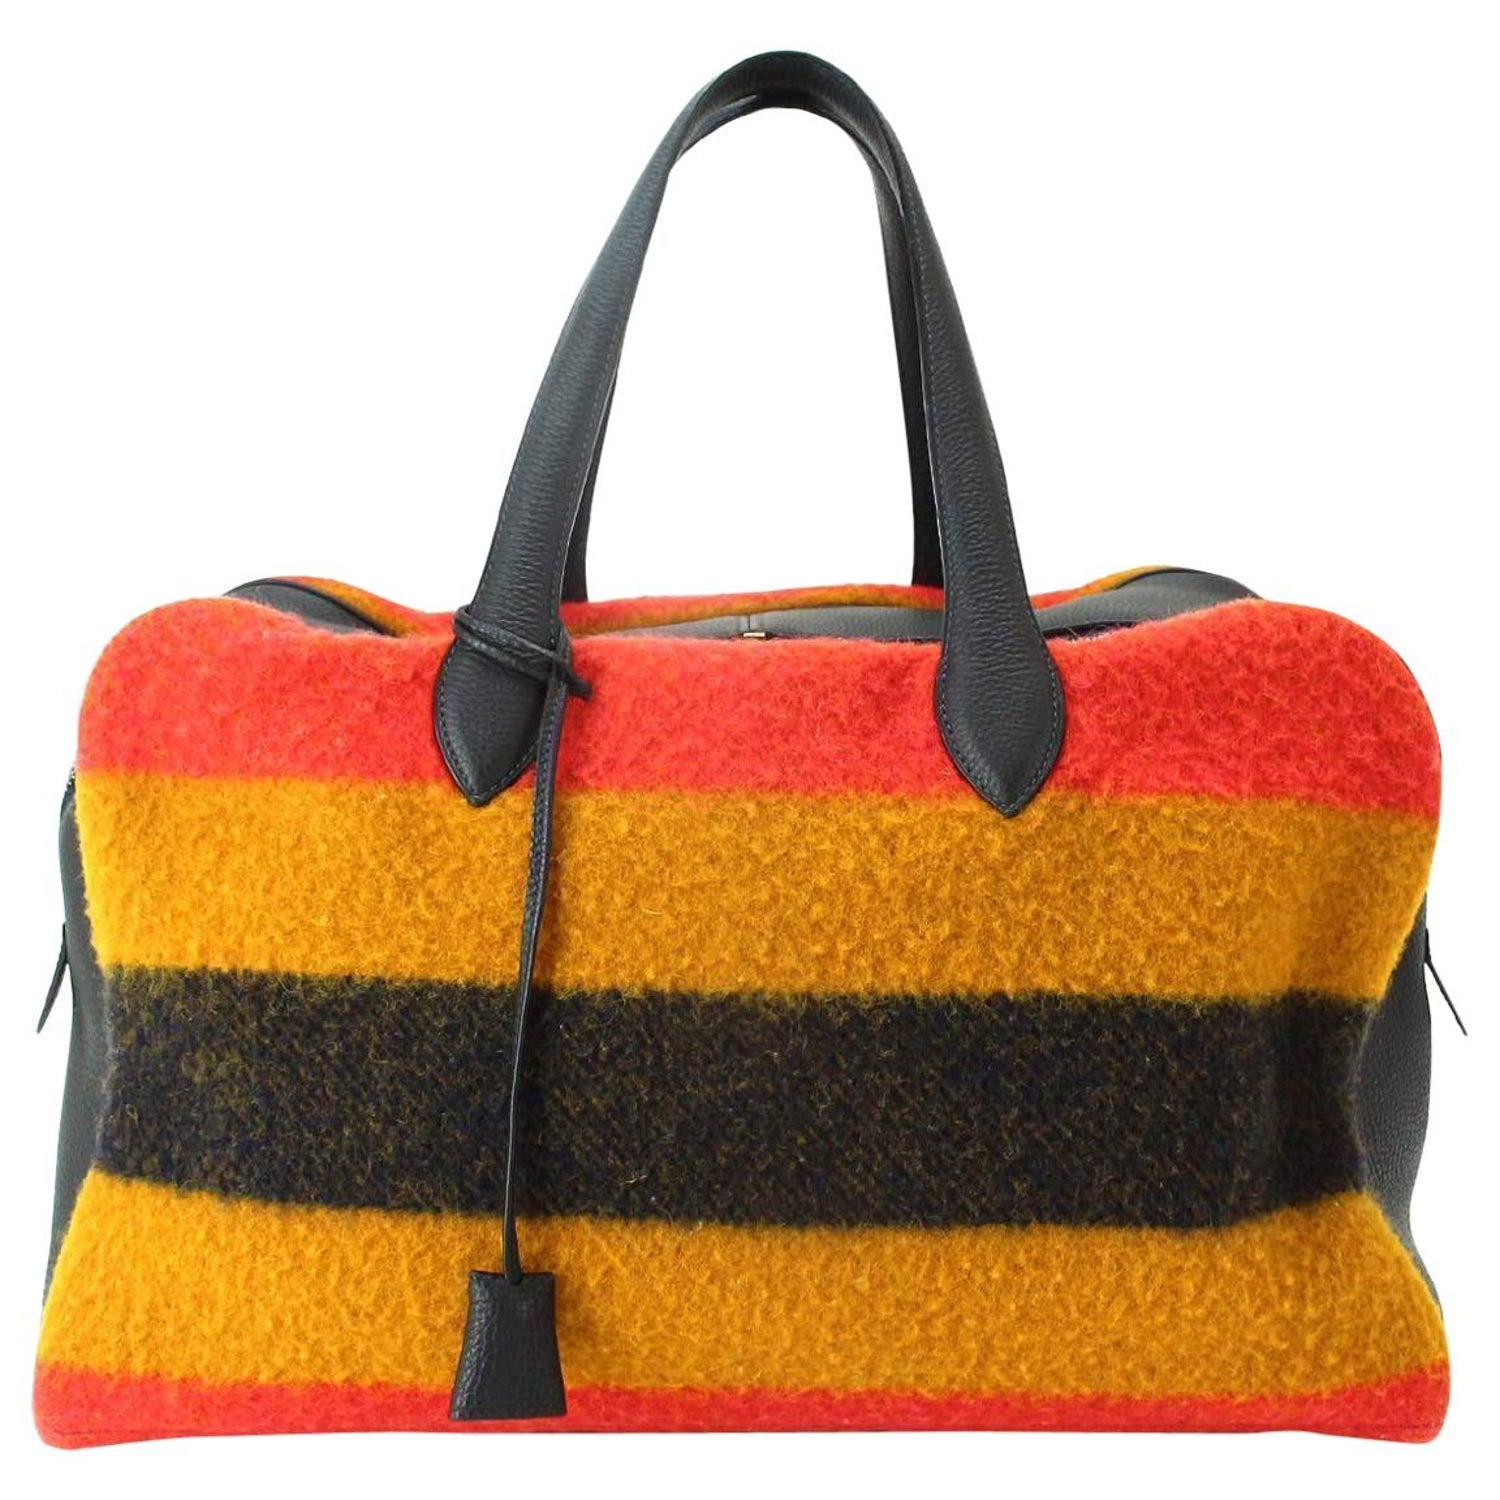 eb66f46ab46e Hermes Multi Stripe Wool Leather Men's Carryall Travel Duffle Weekender  Tote Bag For Sale at 1stdibs